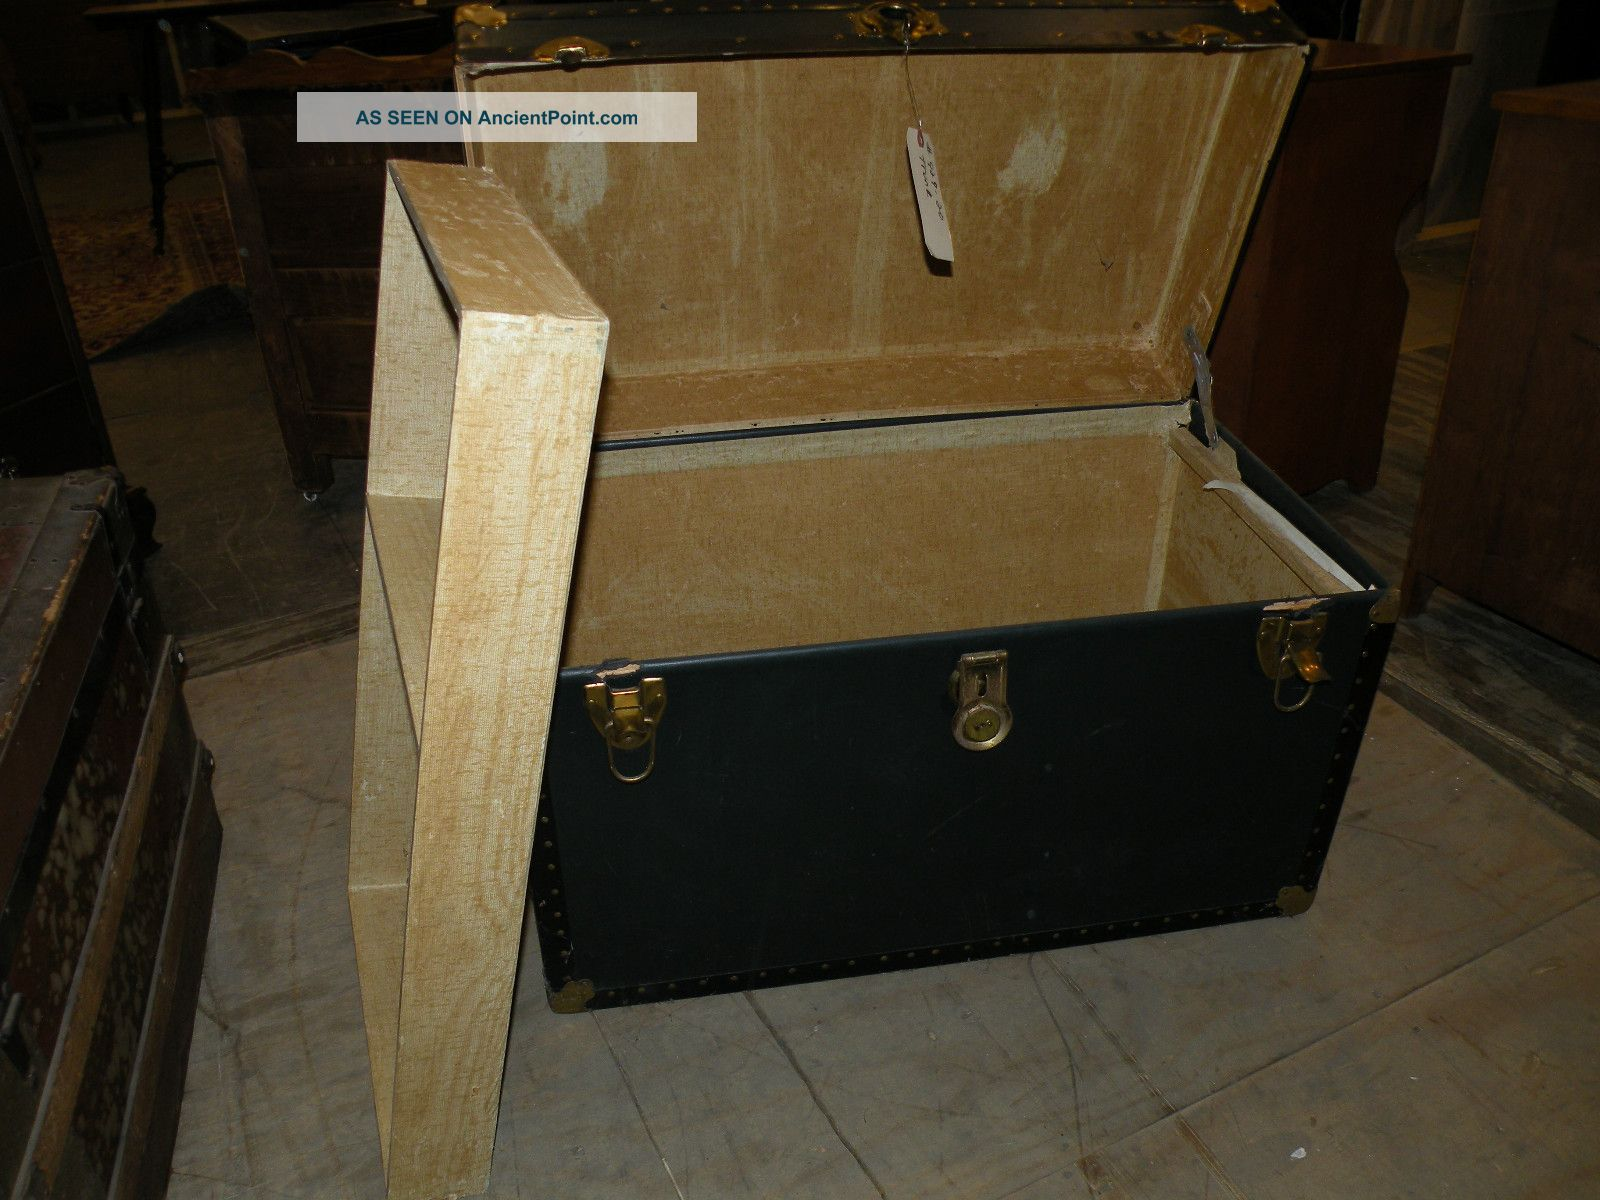 Antique Flat Top Steamer Travel Railroad Trunk Storage Chest With Inserts 1900-1950 photo